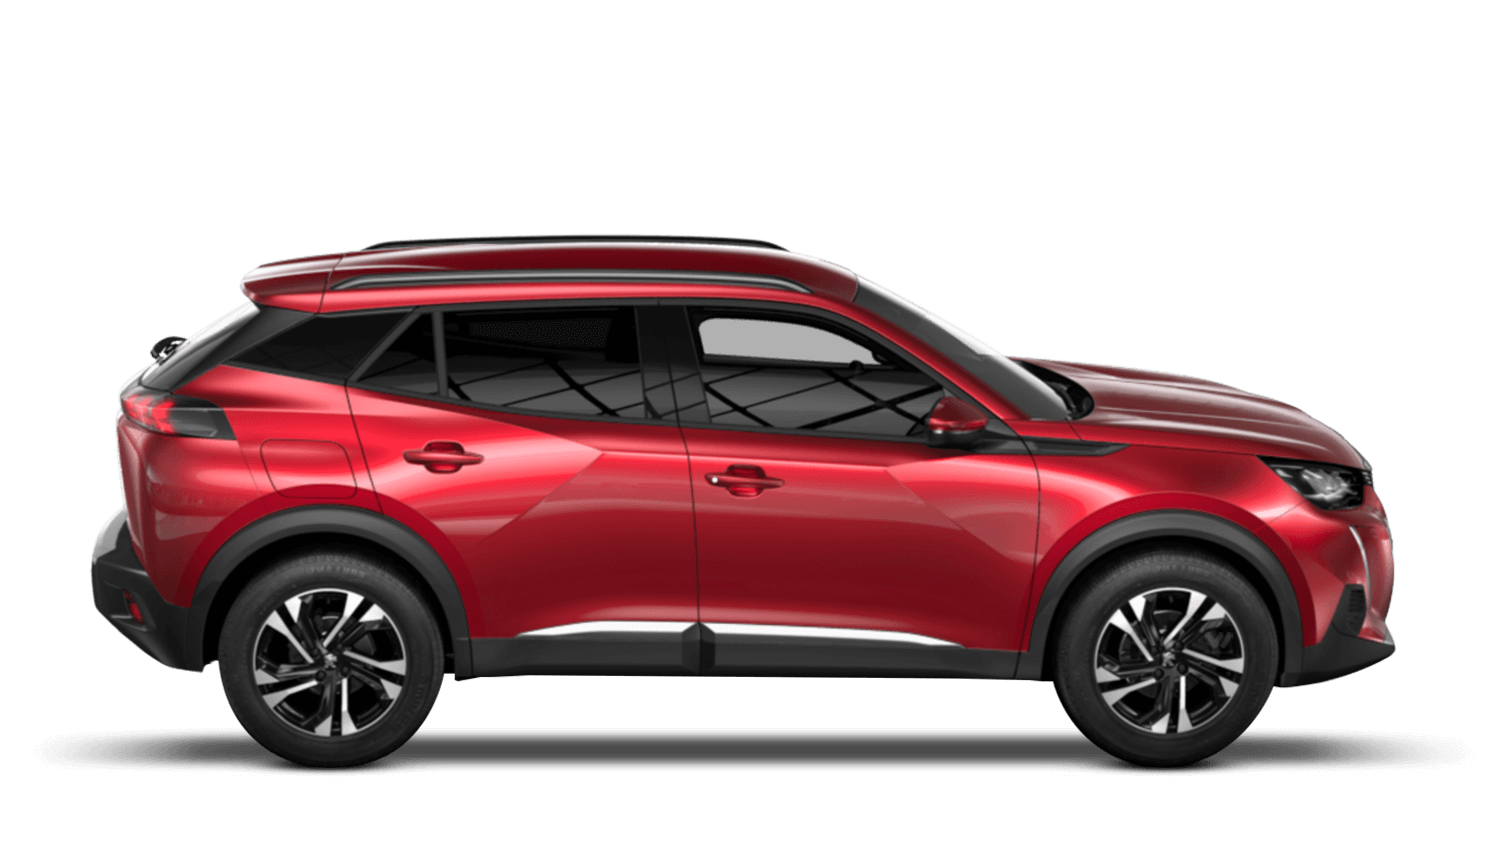 Elixir Red All-new Peugeot 2008 SUV